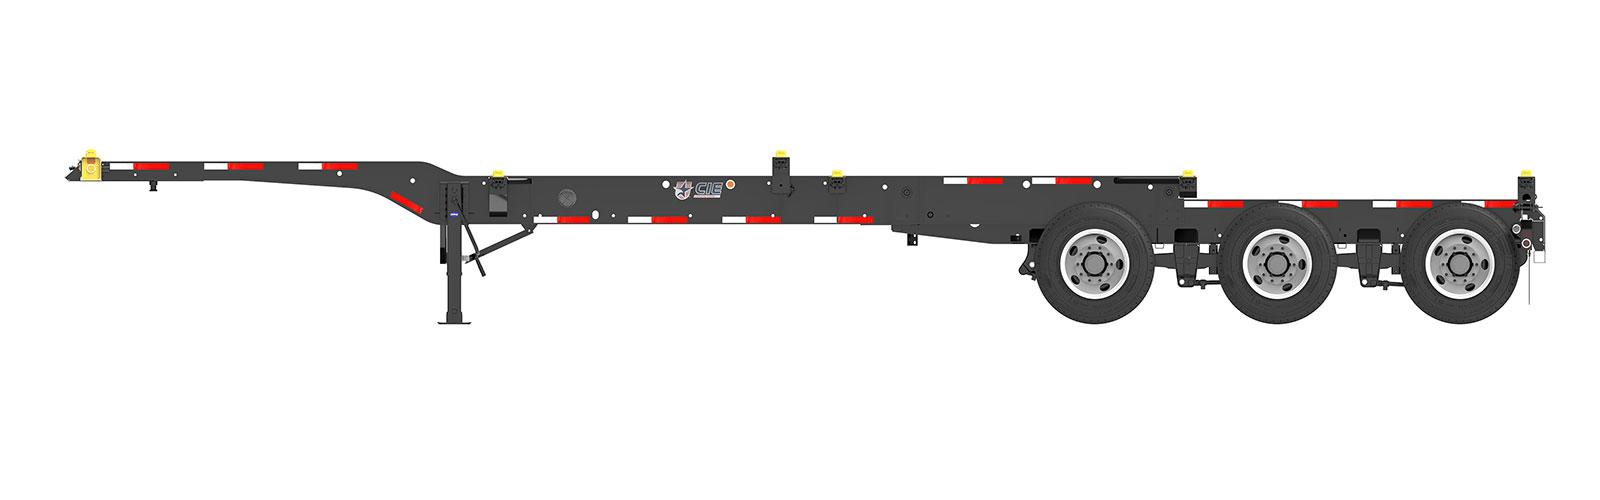 20-40' Combo Tridem Container Chassis Orthographic Side View Final